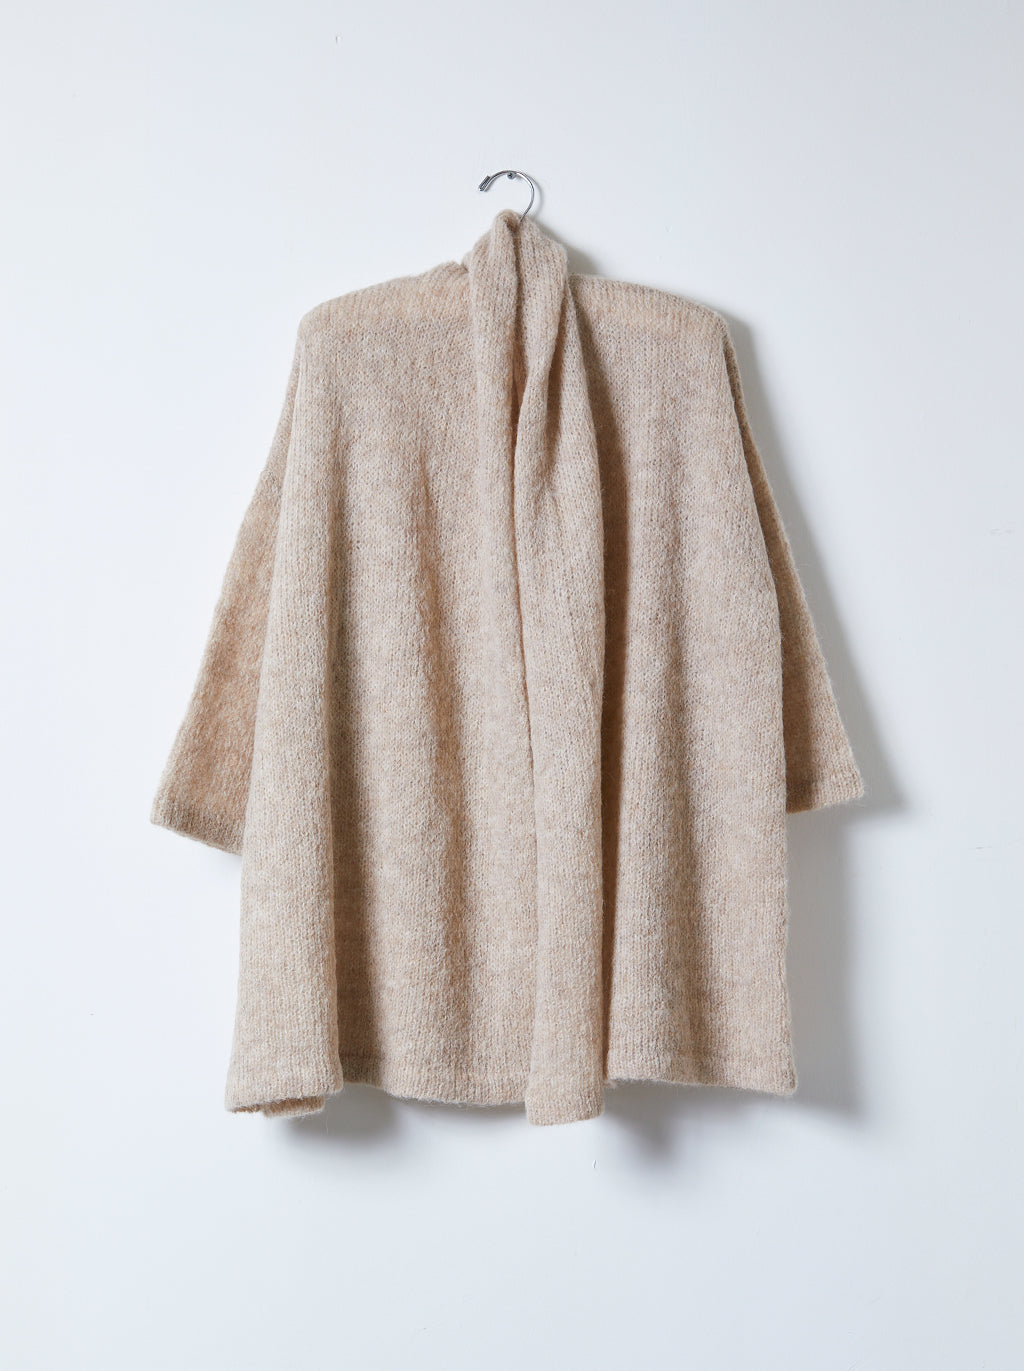 Spring Lightweight Haori Coat Sweater, More Colors